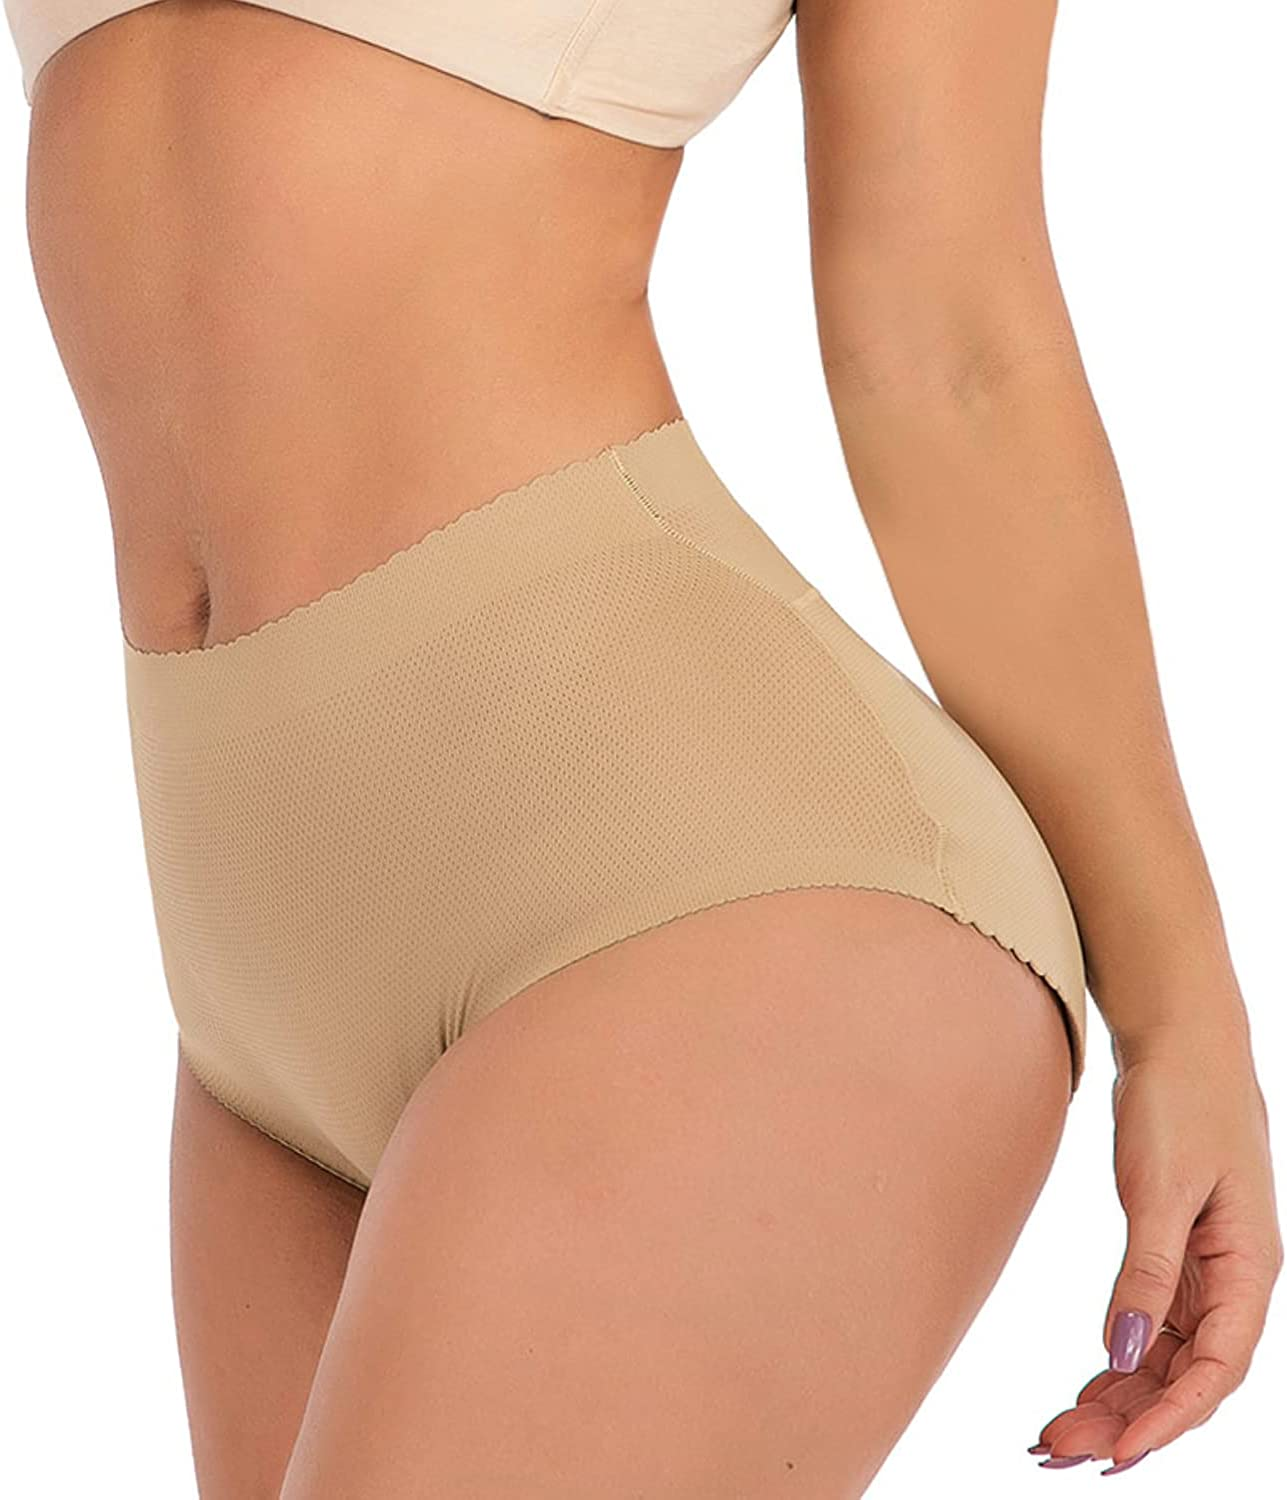 Padded Panties with Butt Lift Hip Enhancer Underwear Boy Shorts Body Shaper Panties with Tummy Control